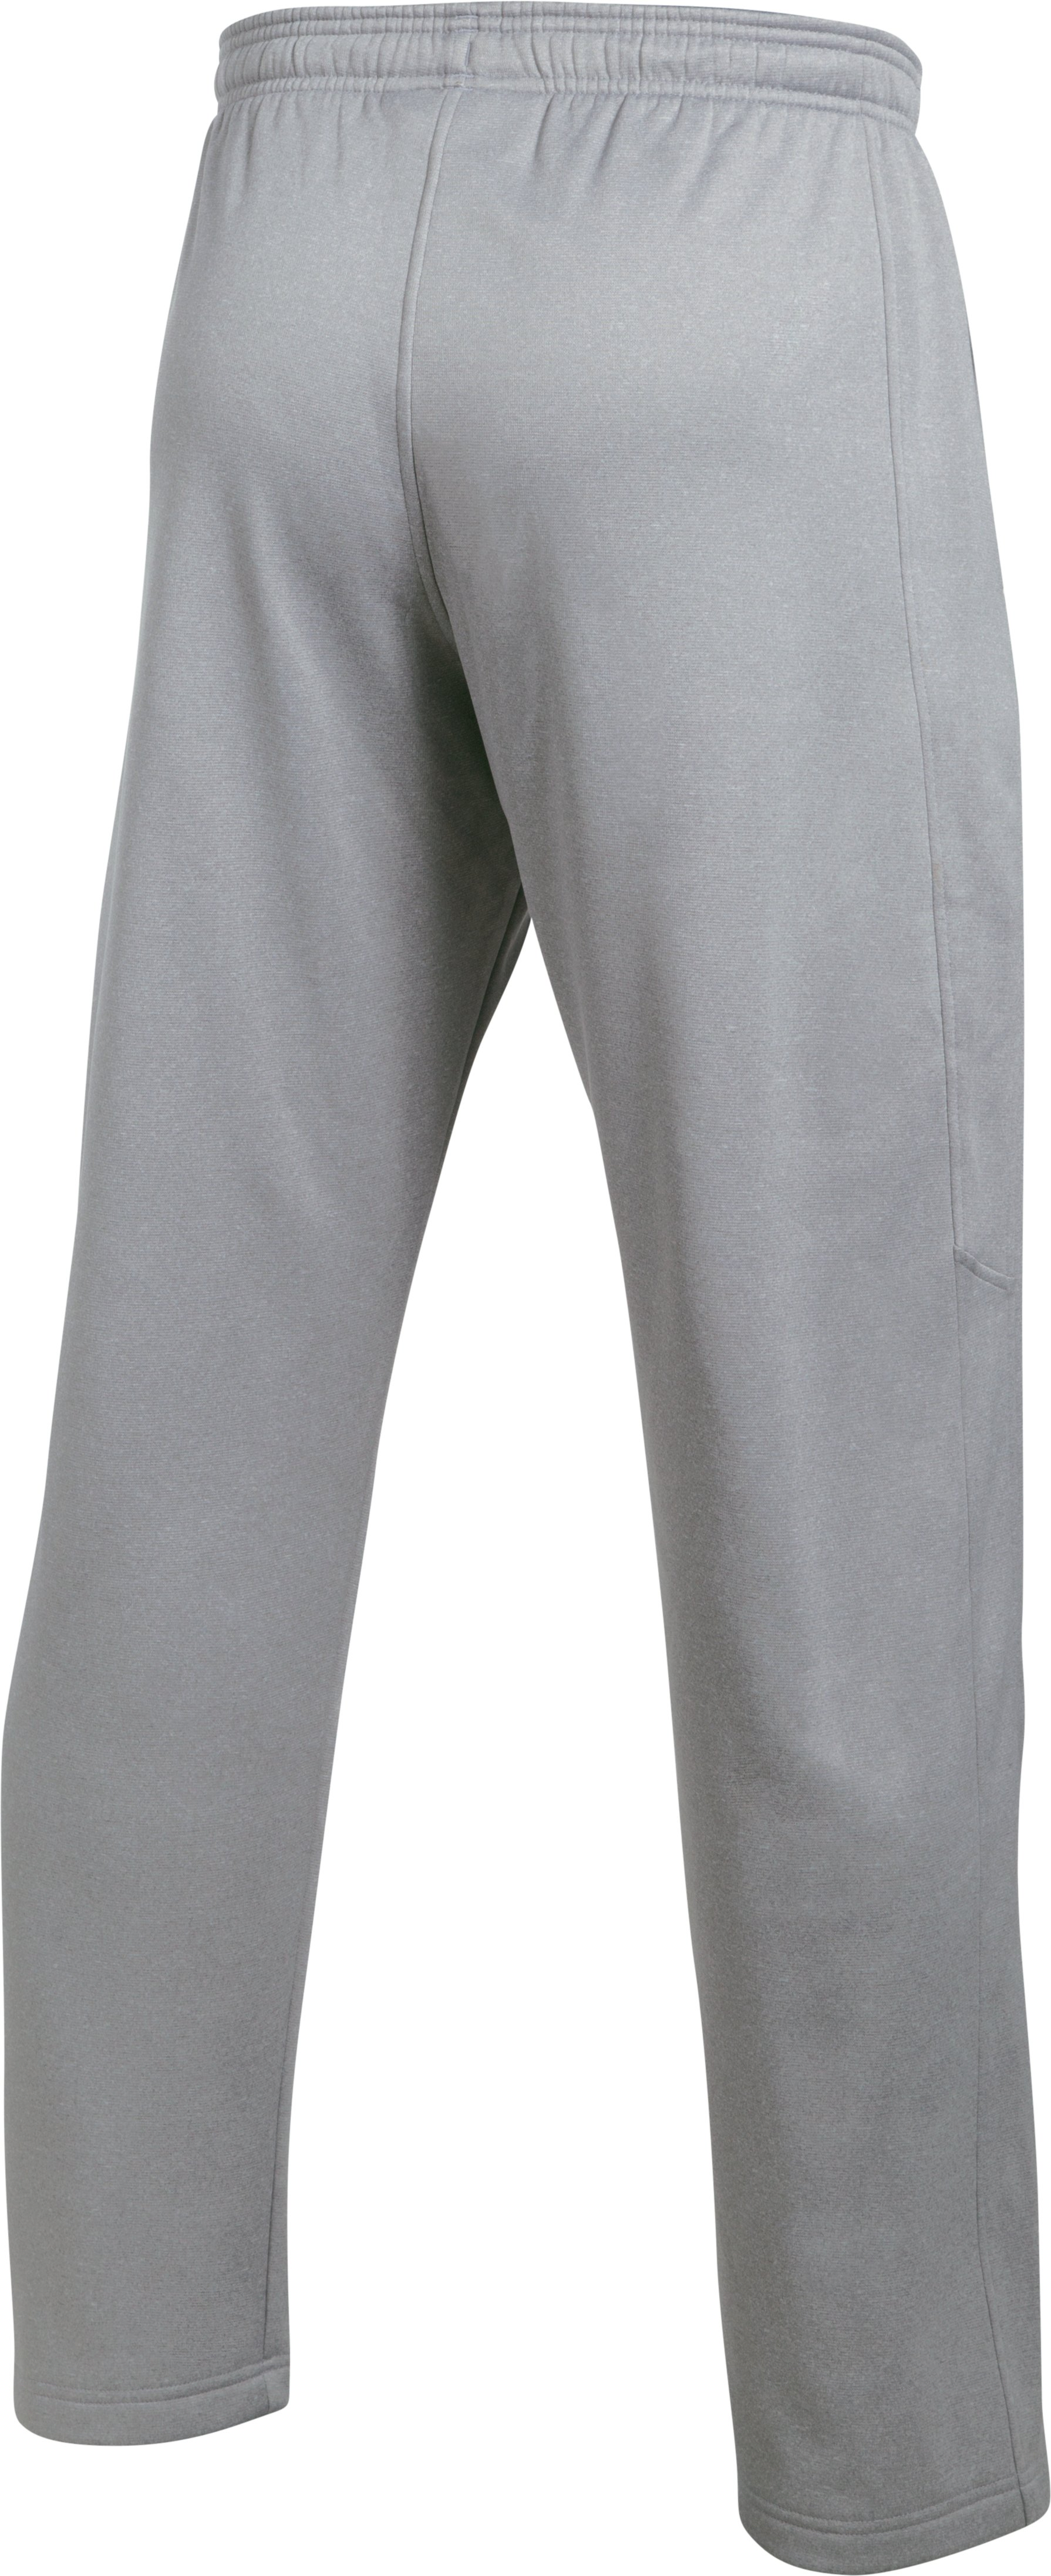 Men's Armour Fleece® Lightweight Pants, True Gray Heather,